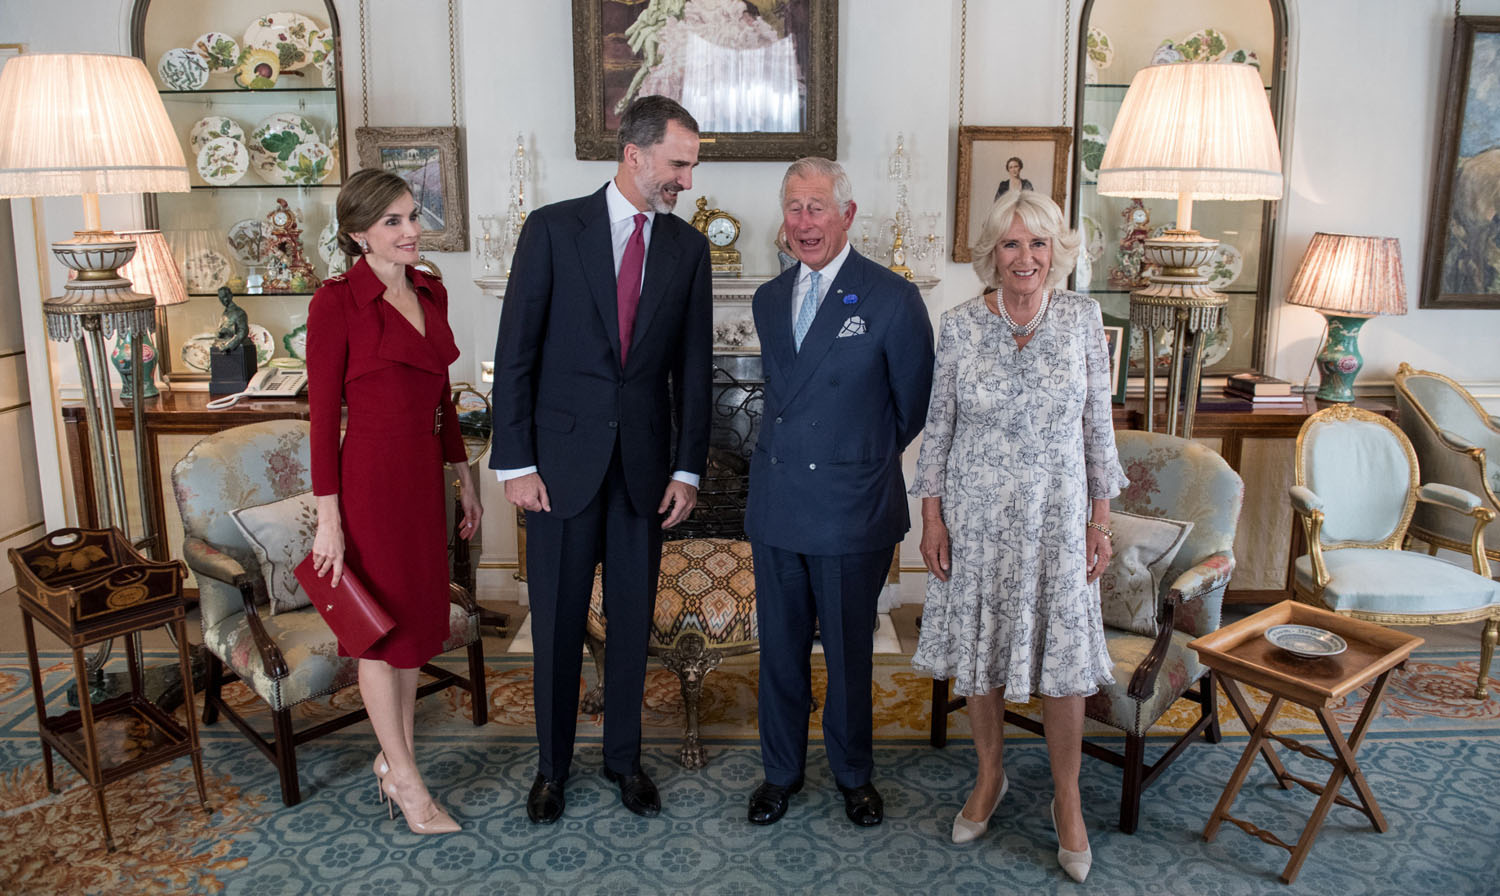 (Left to right) Queen Letizia of Spain, King Felipe VI, the Prince of Wales and the Duchess of Cornwall at Clarence House, London, during the King's State Visit to the UK.